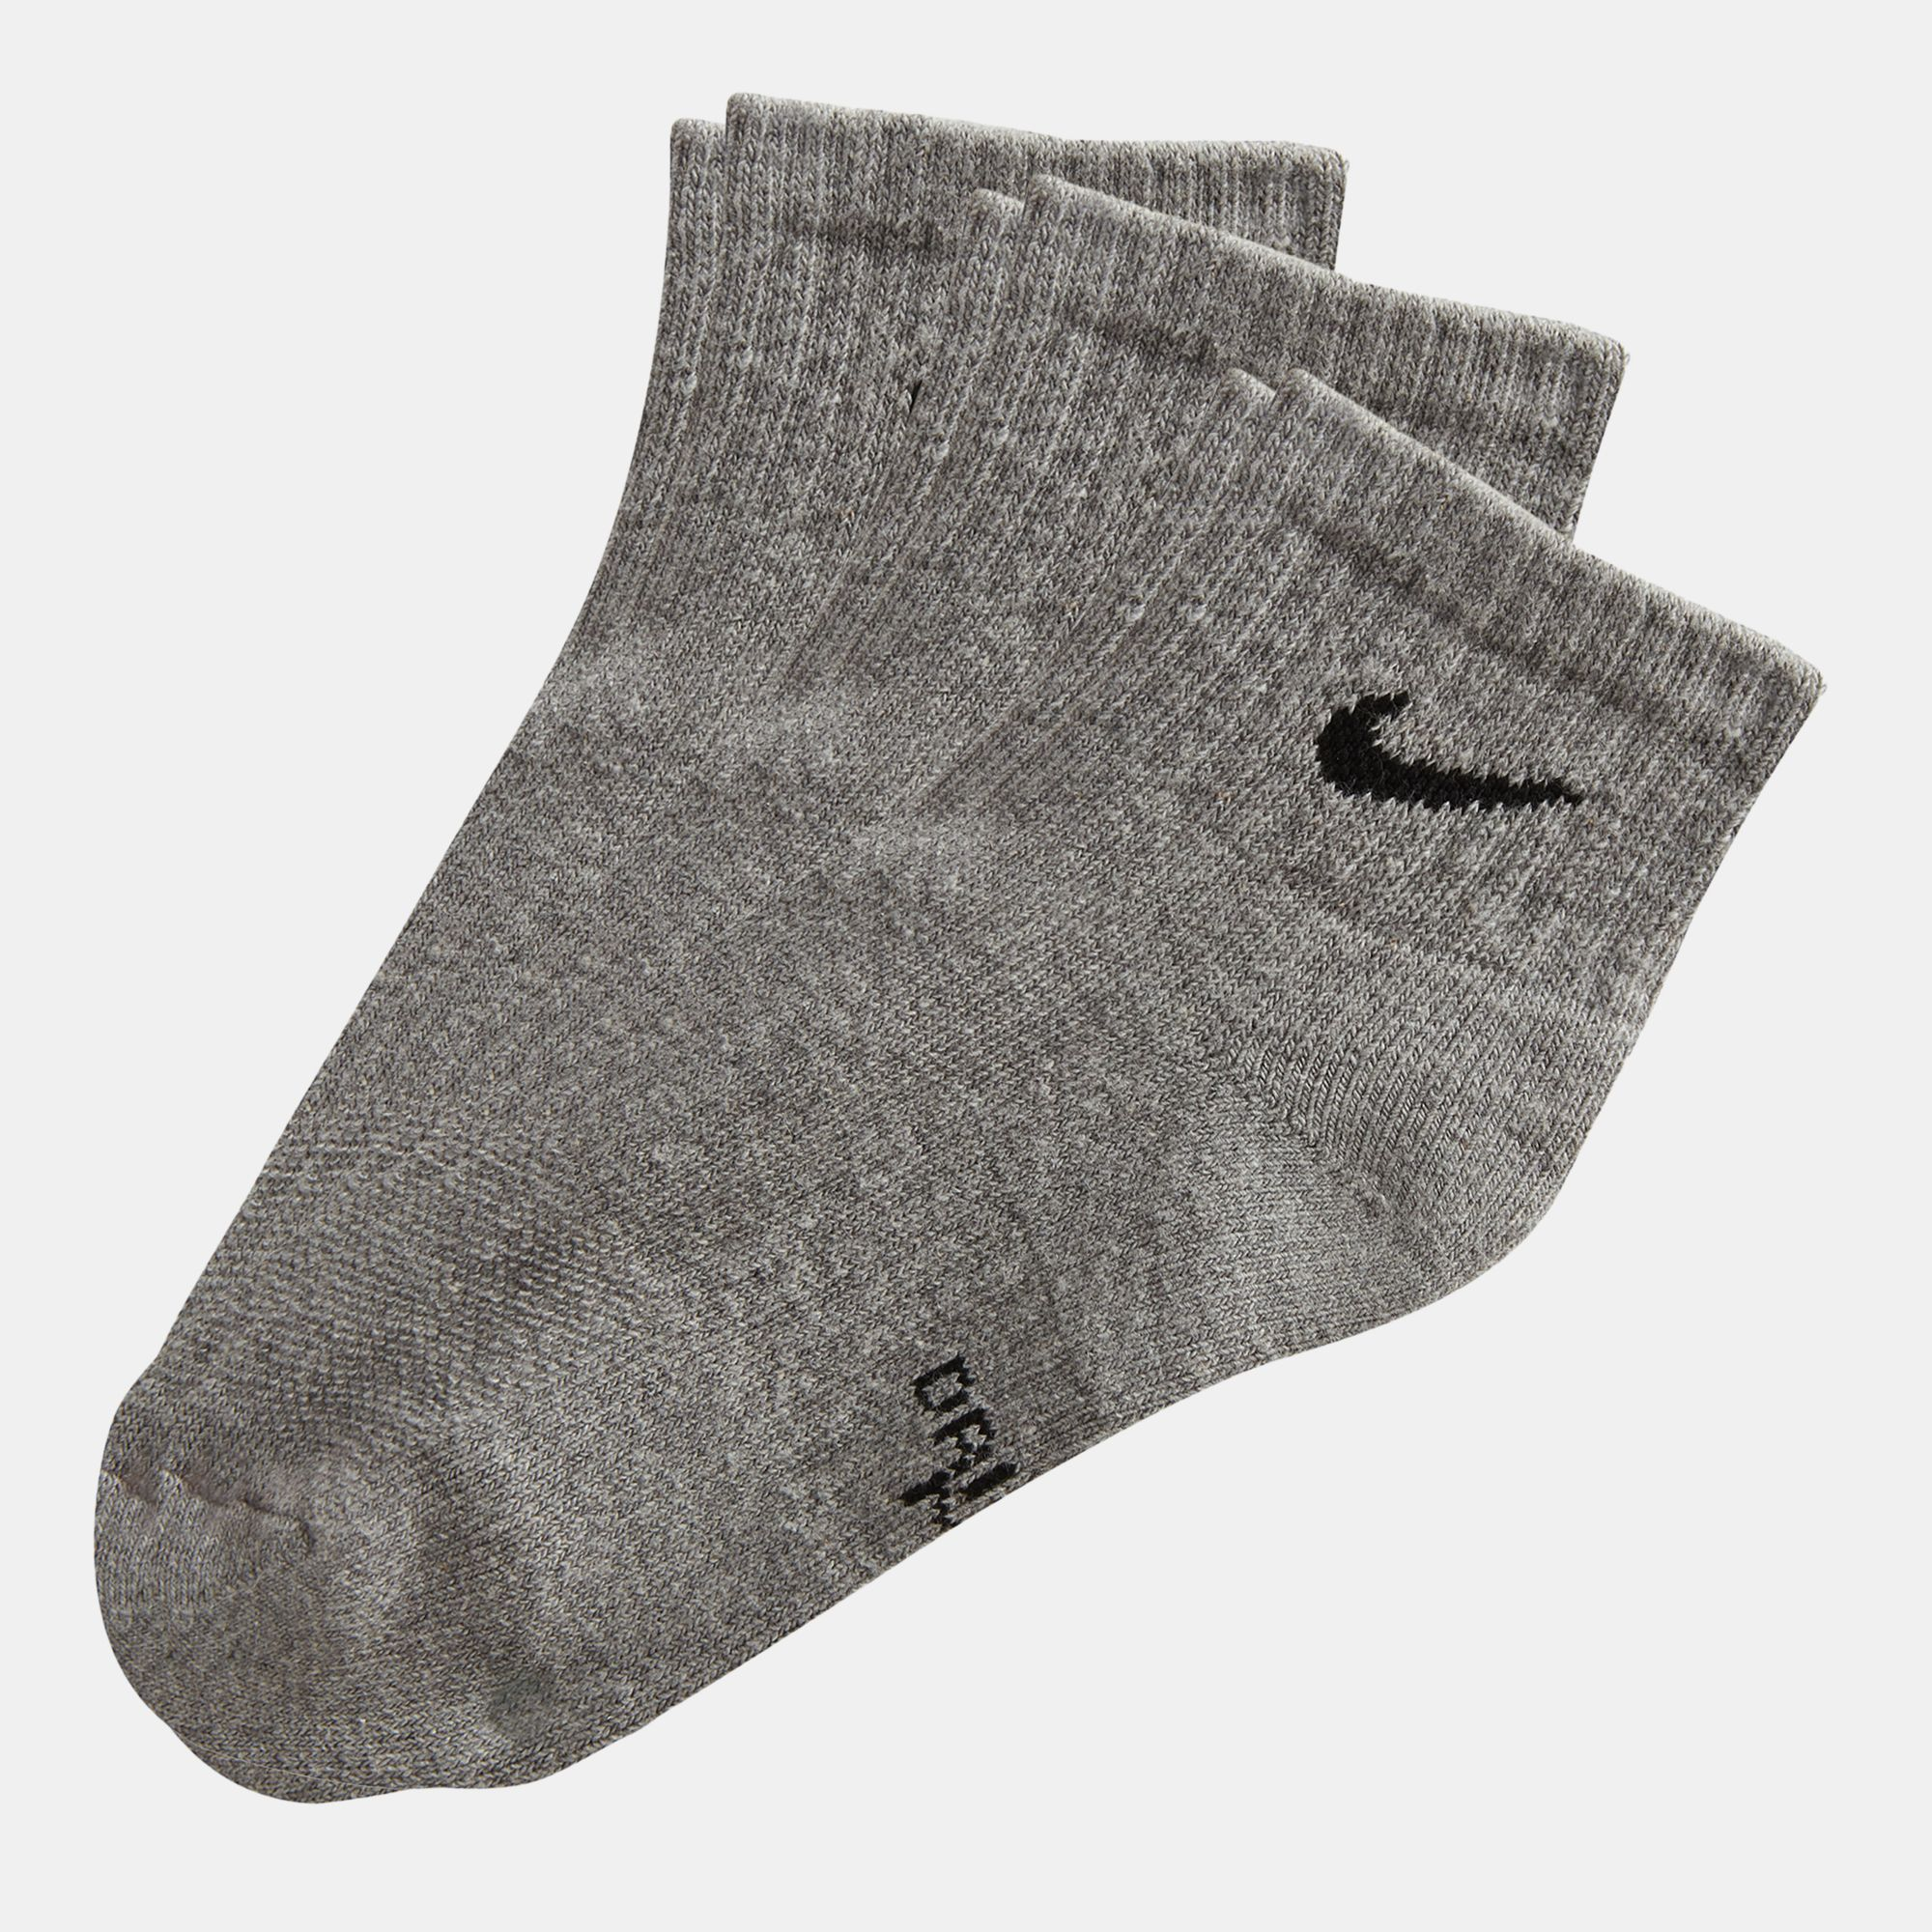 orden llegando comprar auténtico Nike Performance Cushioned Quarter Socks - 3 Pair | Socks ...